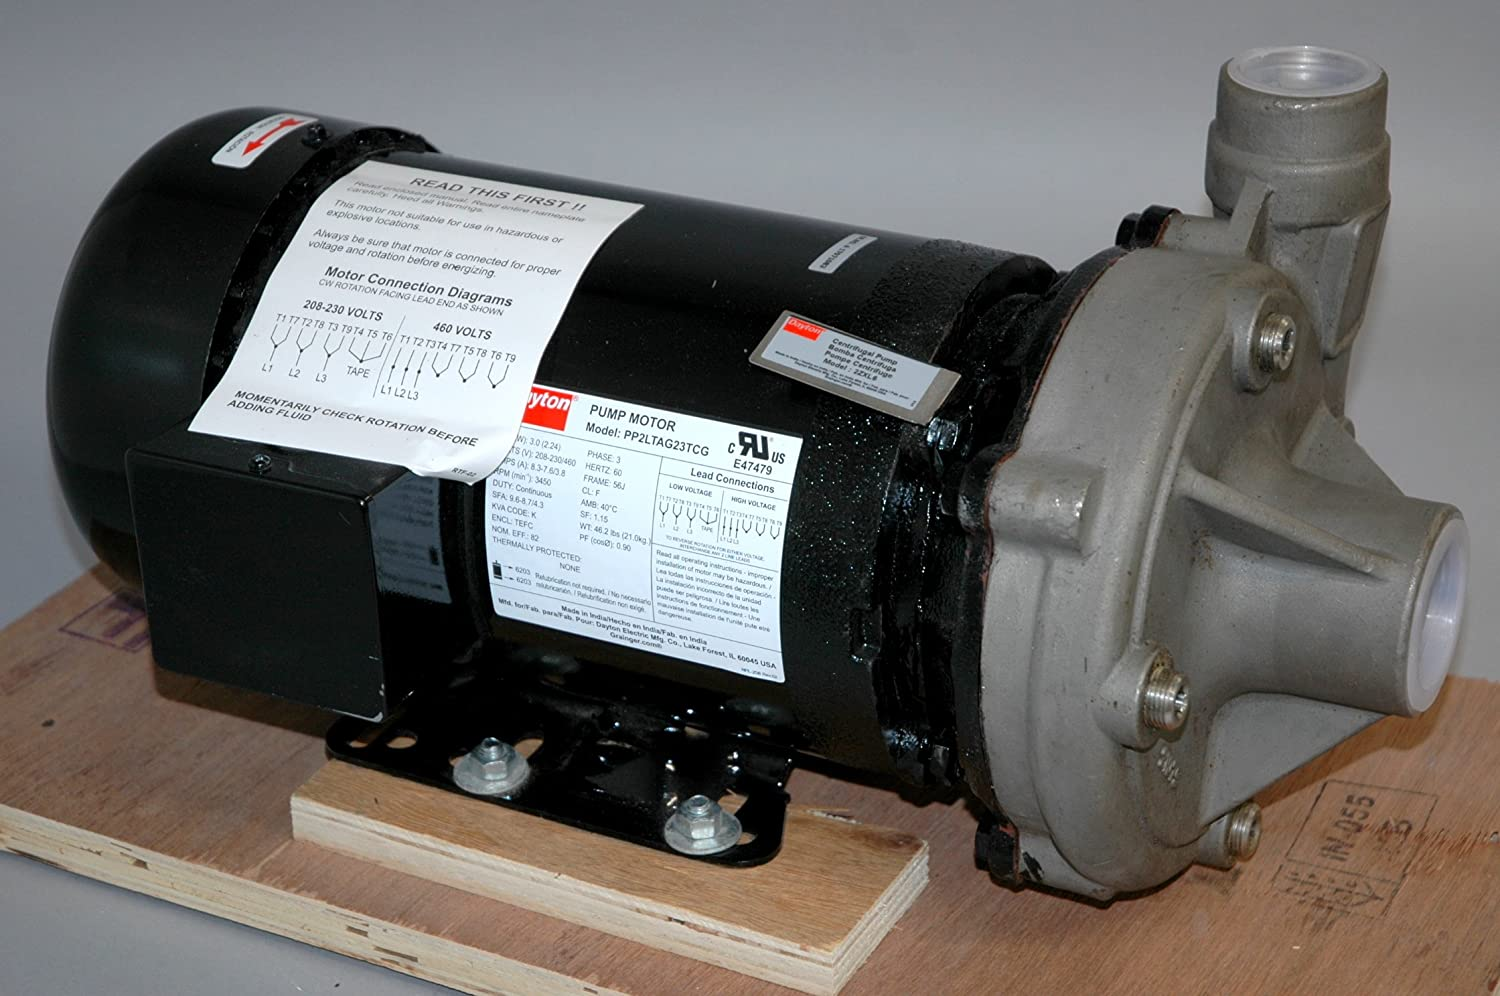 Wiring Diagram 12 Lead 460 Volt Motor Dayton Pp2ltag23tcg Pump With 2zxl6 Stainless Steel 3 Hp Centrifugal 208 230 460v Industrial Scientific